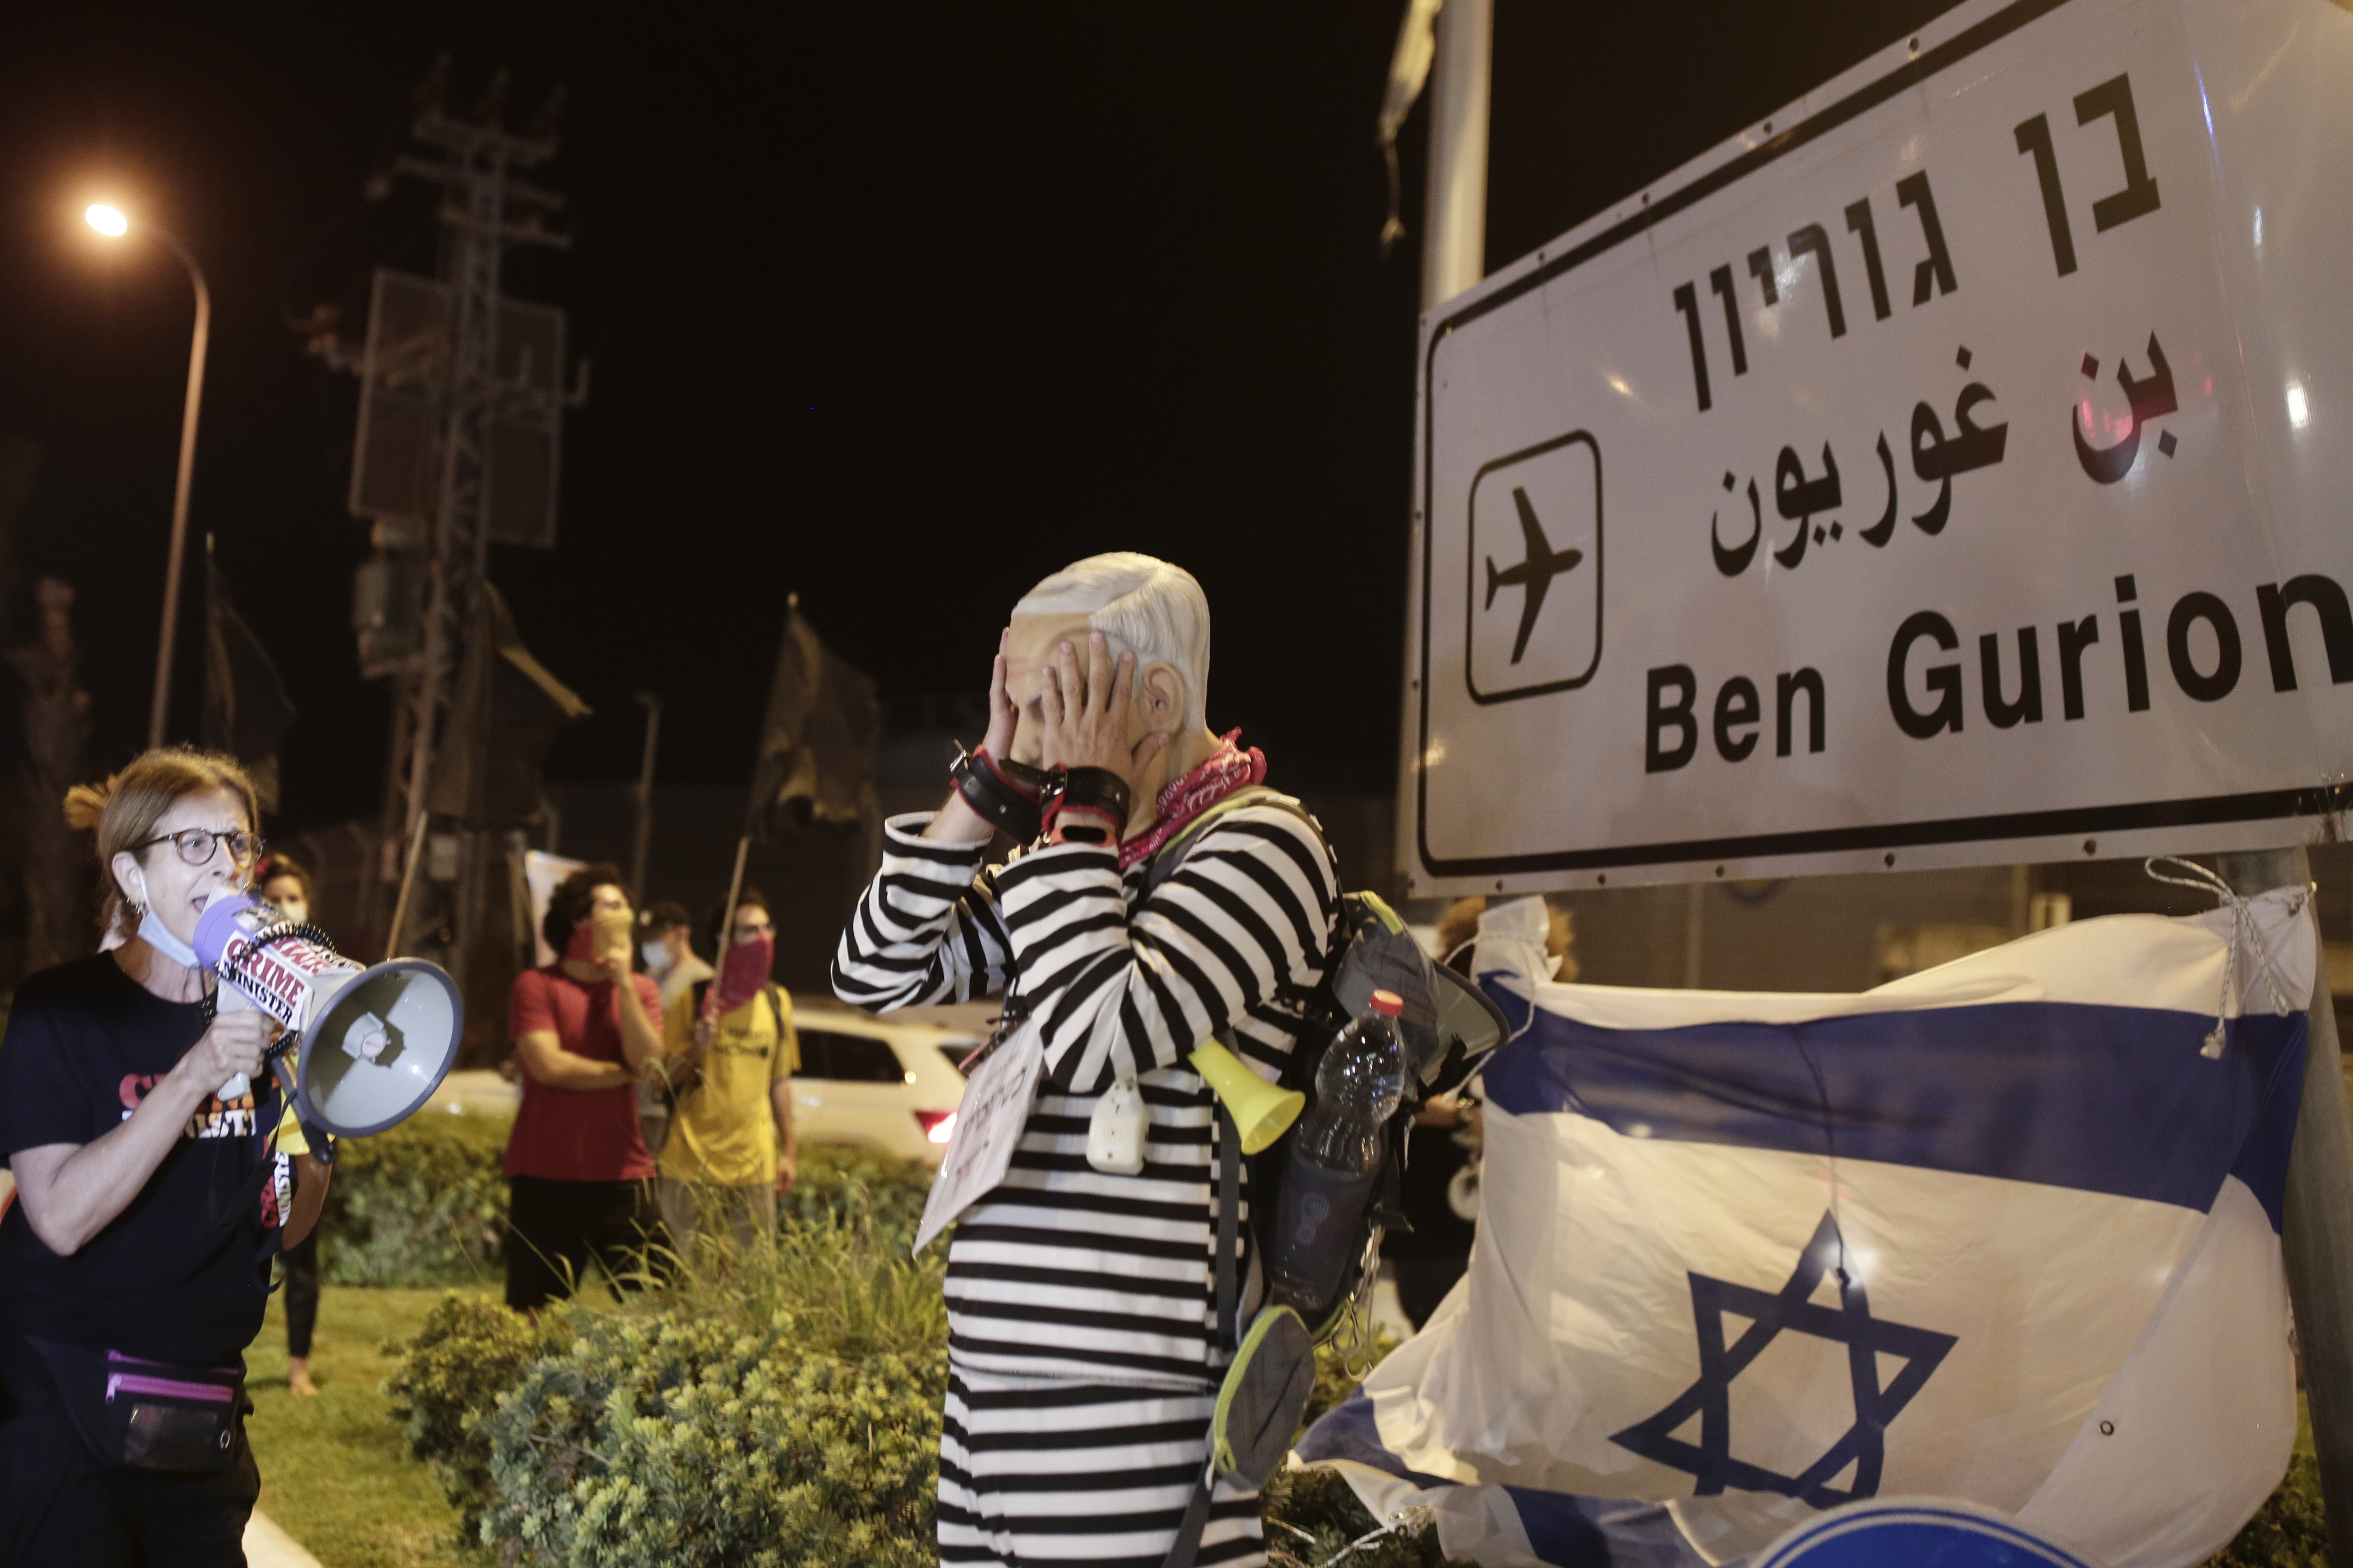 A protester wearing a rubber mask representing Israeli Prime Minister Benjamin Netanyahu stands at an entrance to Ben Gurion Airport, where Netanyahu and his family were expected to fly with an Israeli delegation to the U.S. for a ceremony with the United Arab Emirates, in Tel Aviv, Sunday, Sept. 13, 2020. (AP Photo/Maya Alleruzzo)